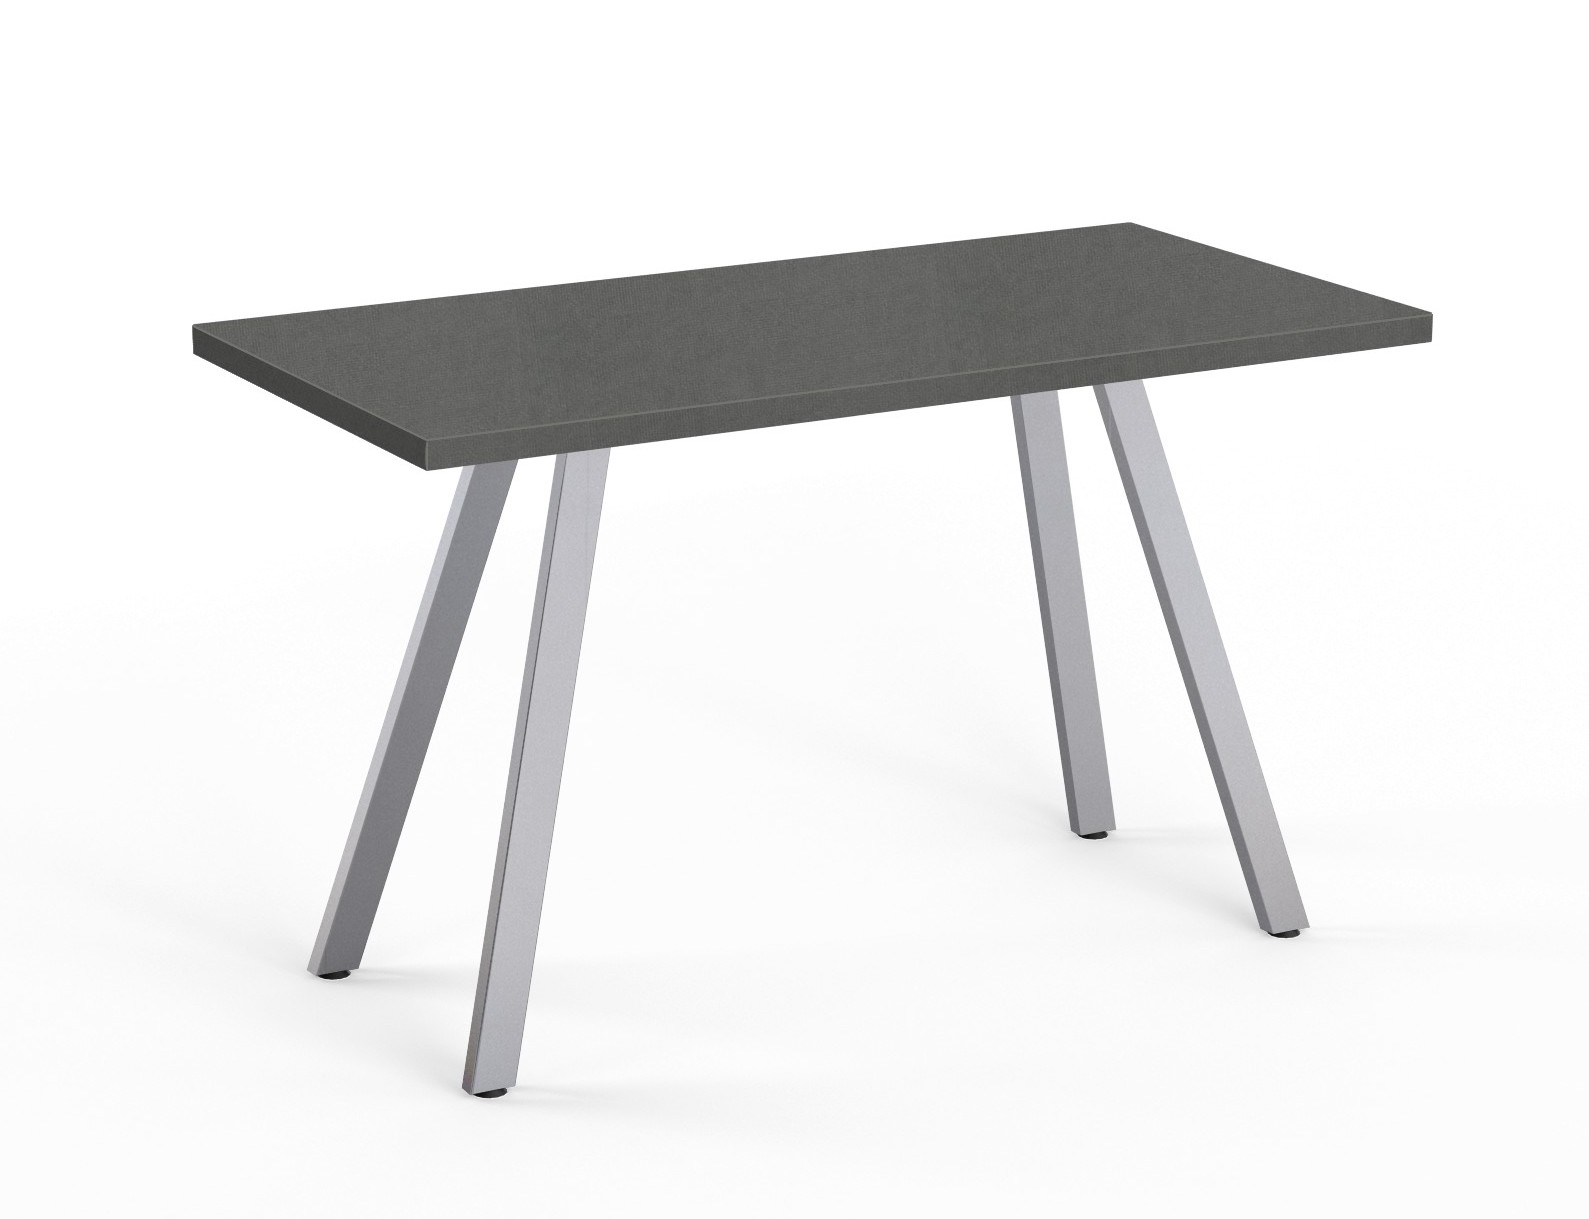 chino aim table by special-t